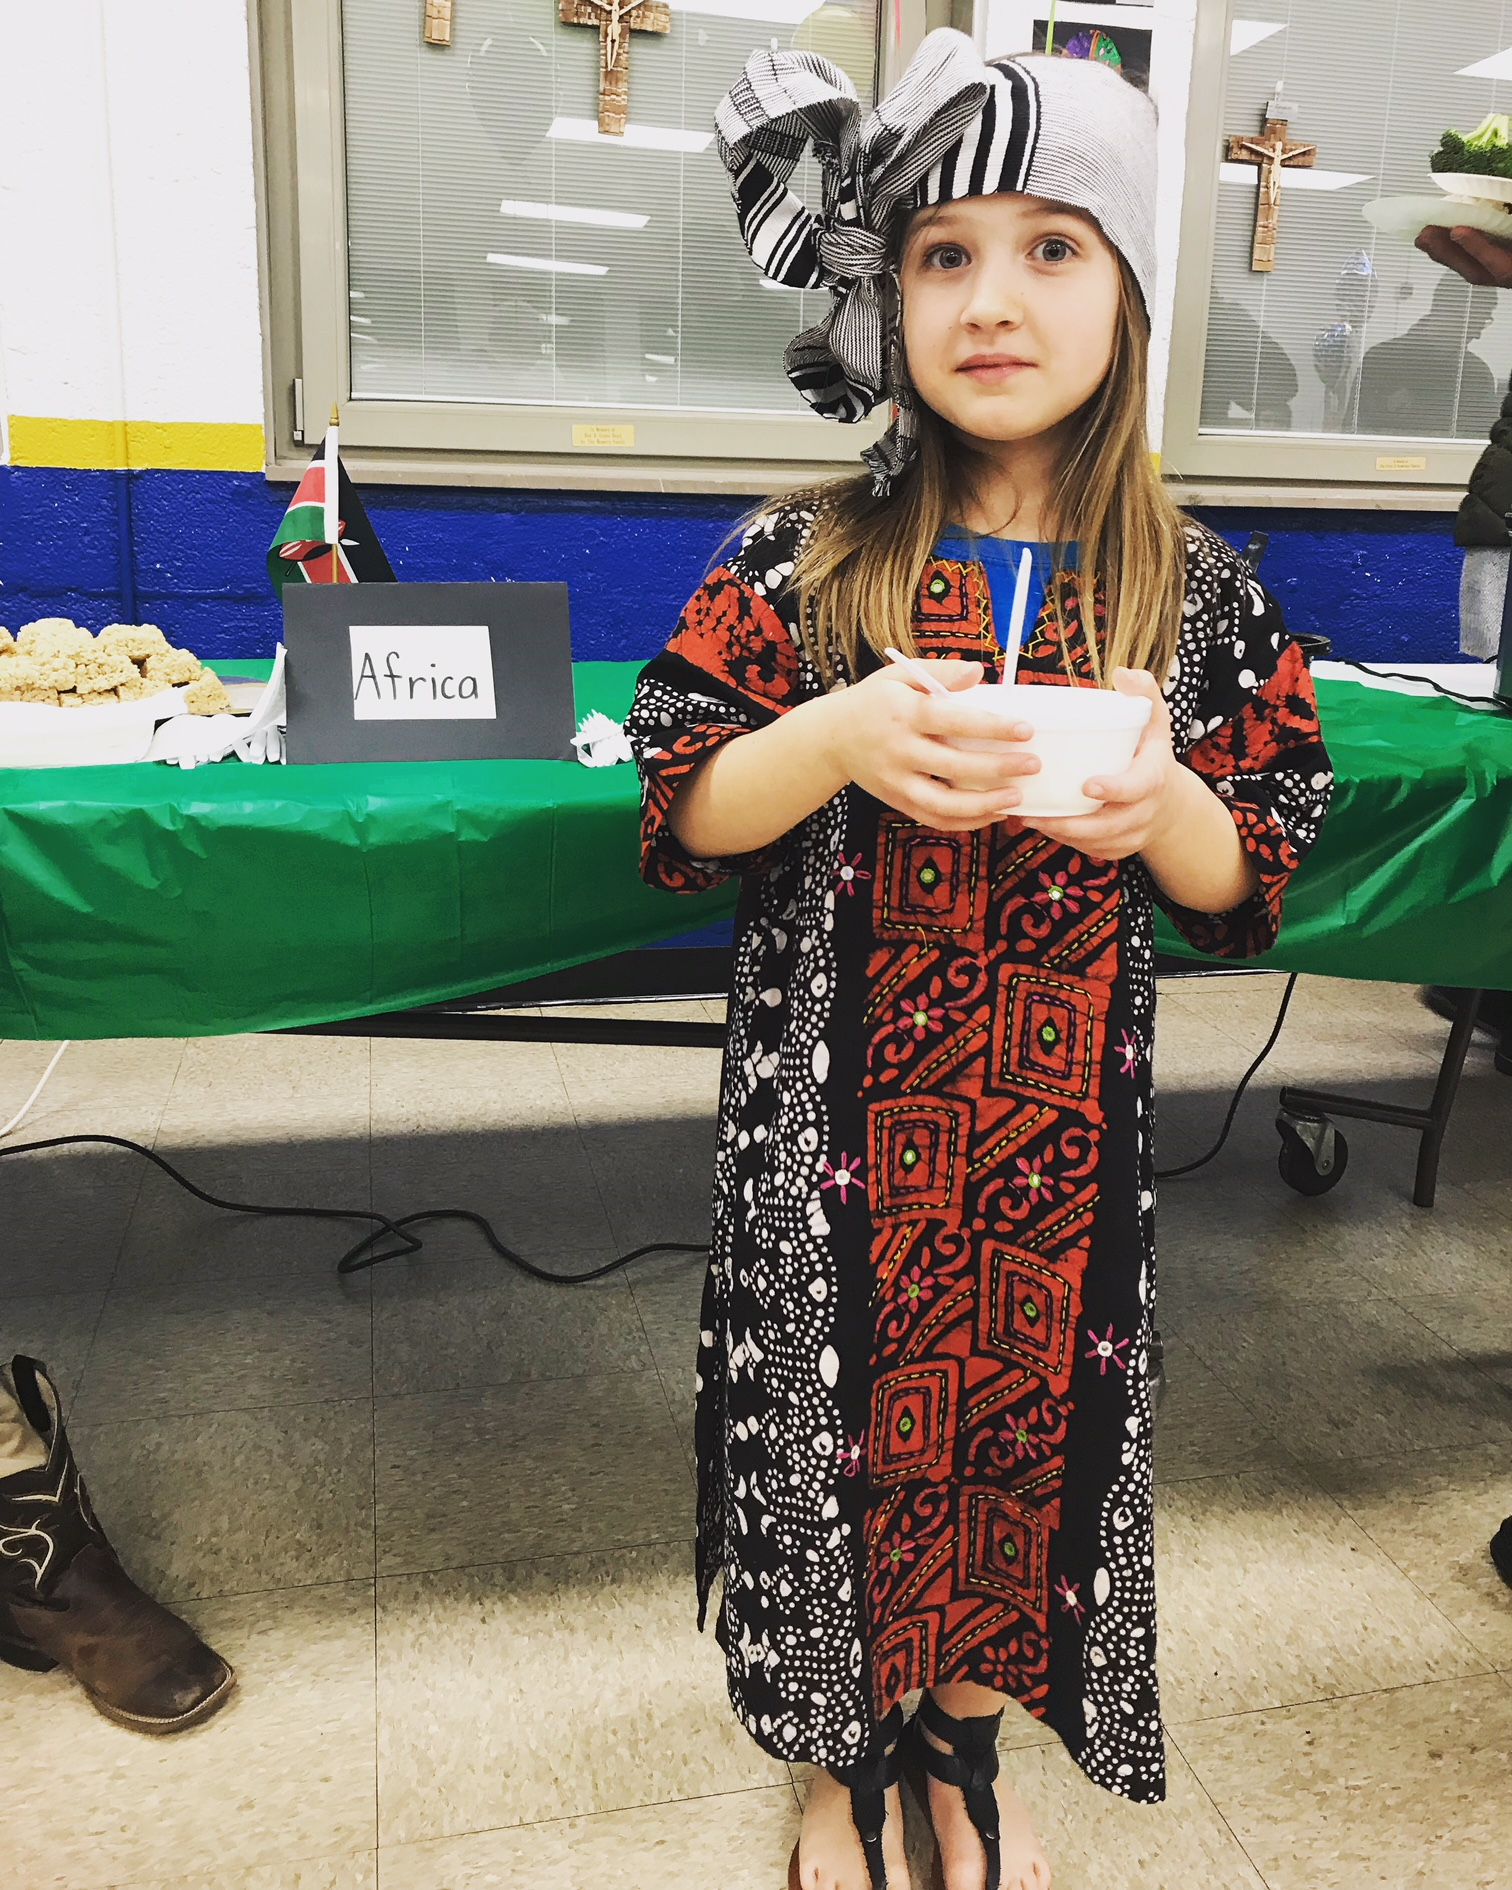 Emma as a little girl from Kenya. She chose Africa because her uncle is from Liberia.